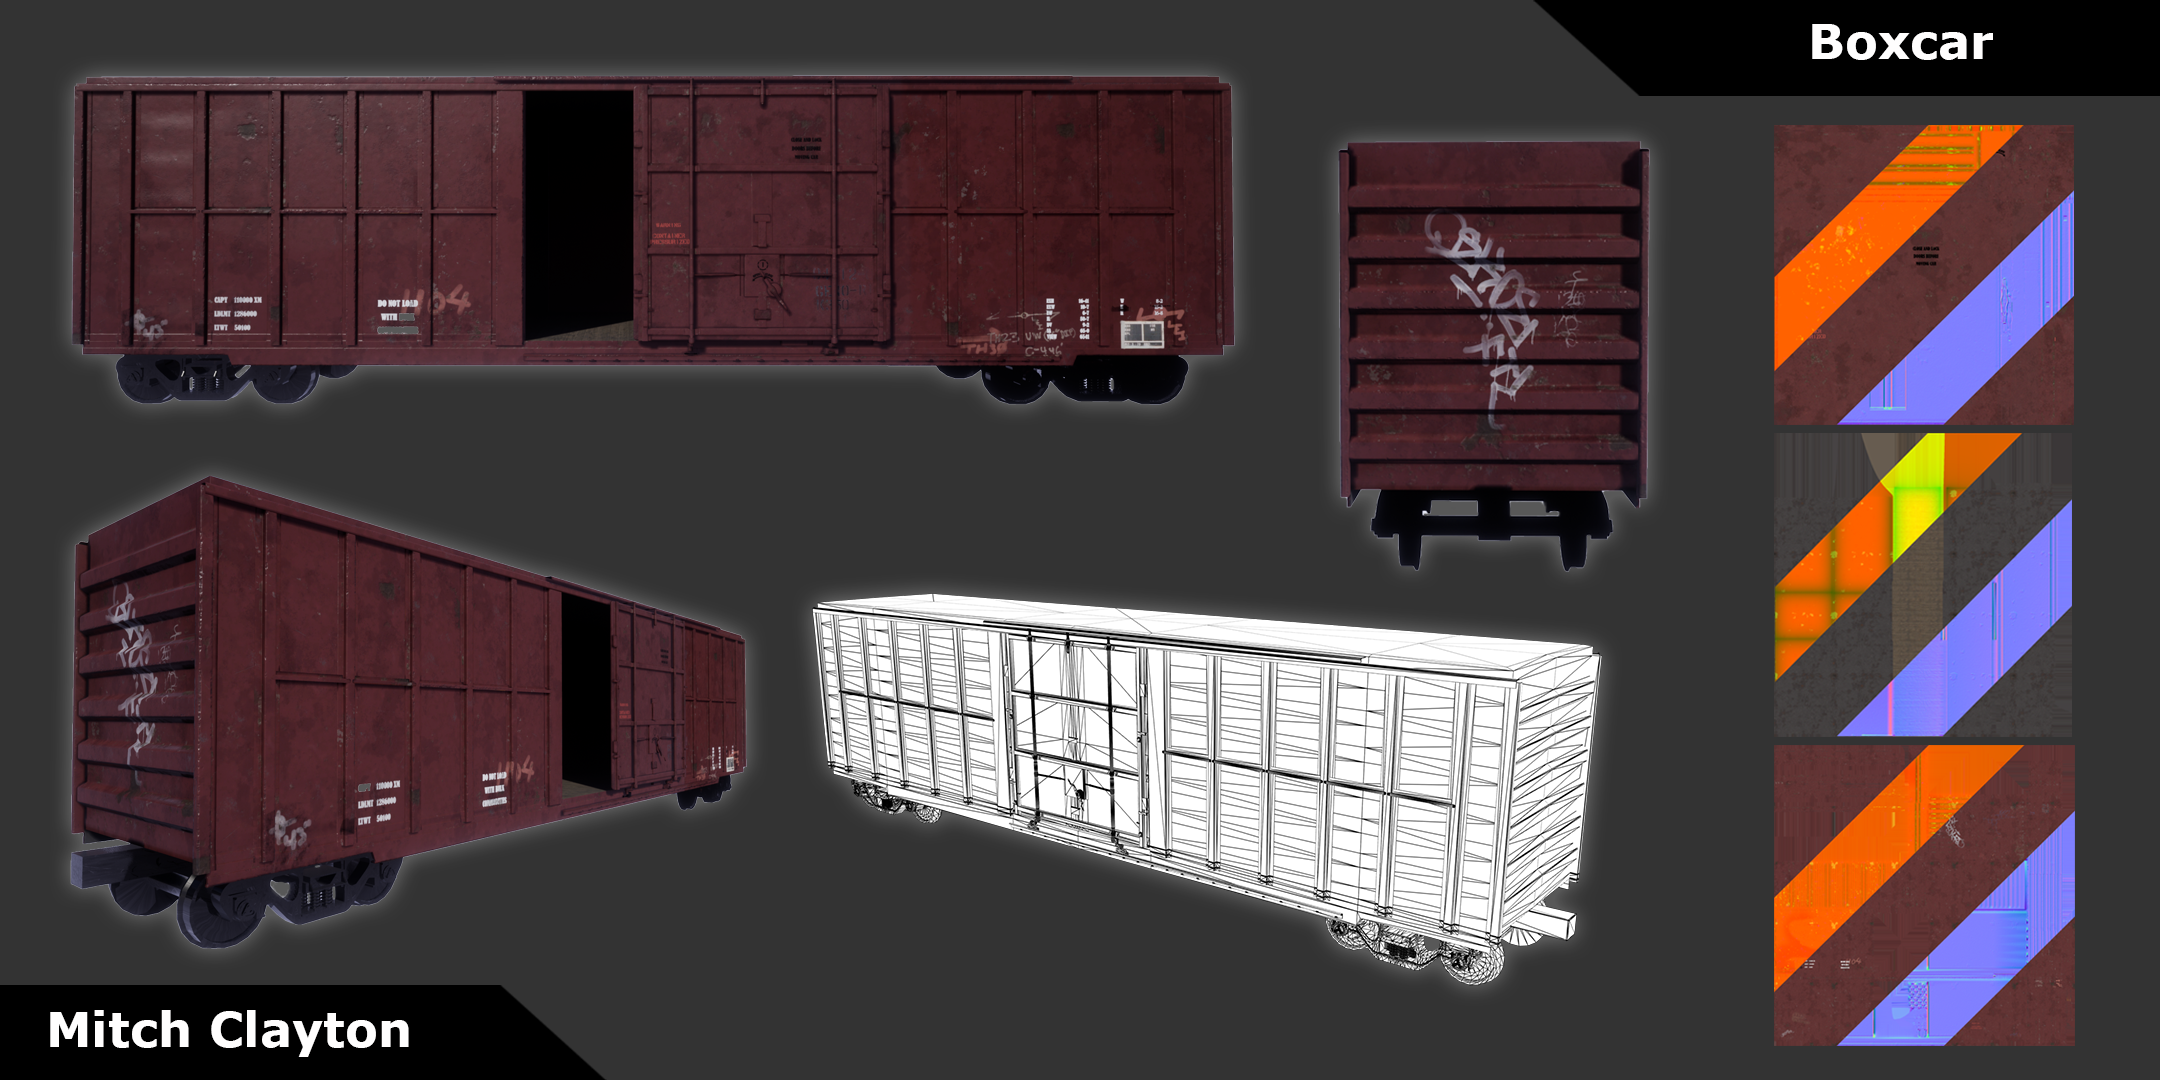 BoxcarBreakdown.png